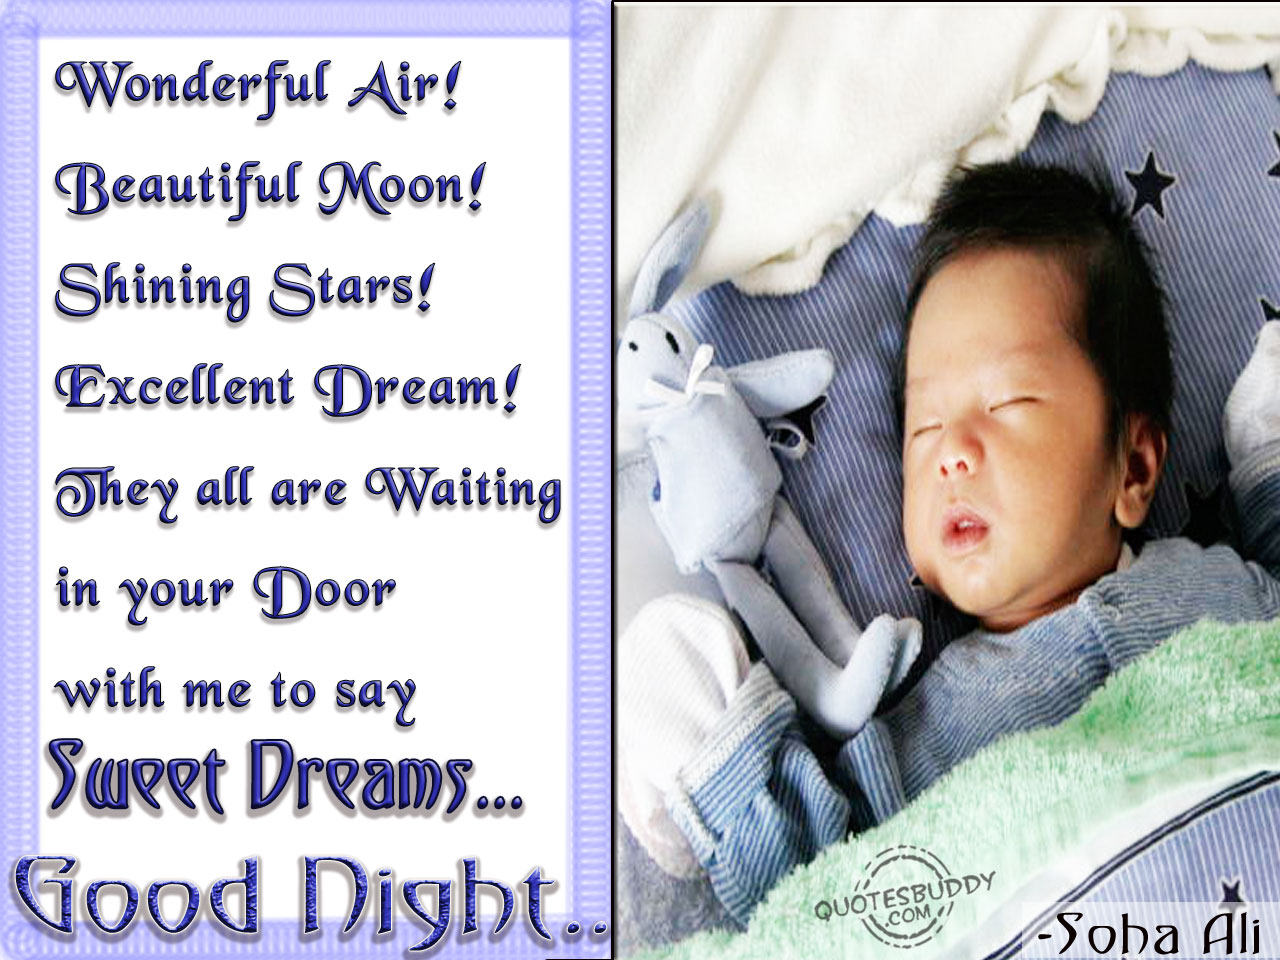 Wonderful Air! Beautiful Moon! Shining Stars! Excellent Dream! They All are Waiting In Your Door with me to Say Sweet Dreams ~ Good Night Quote